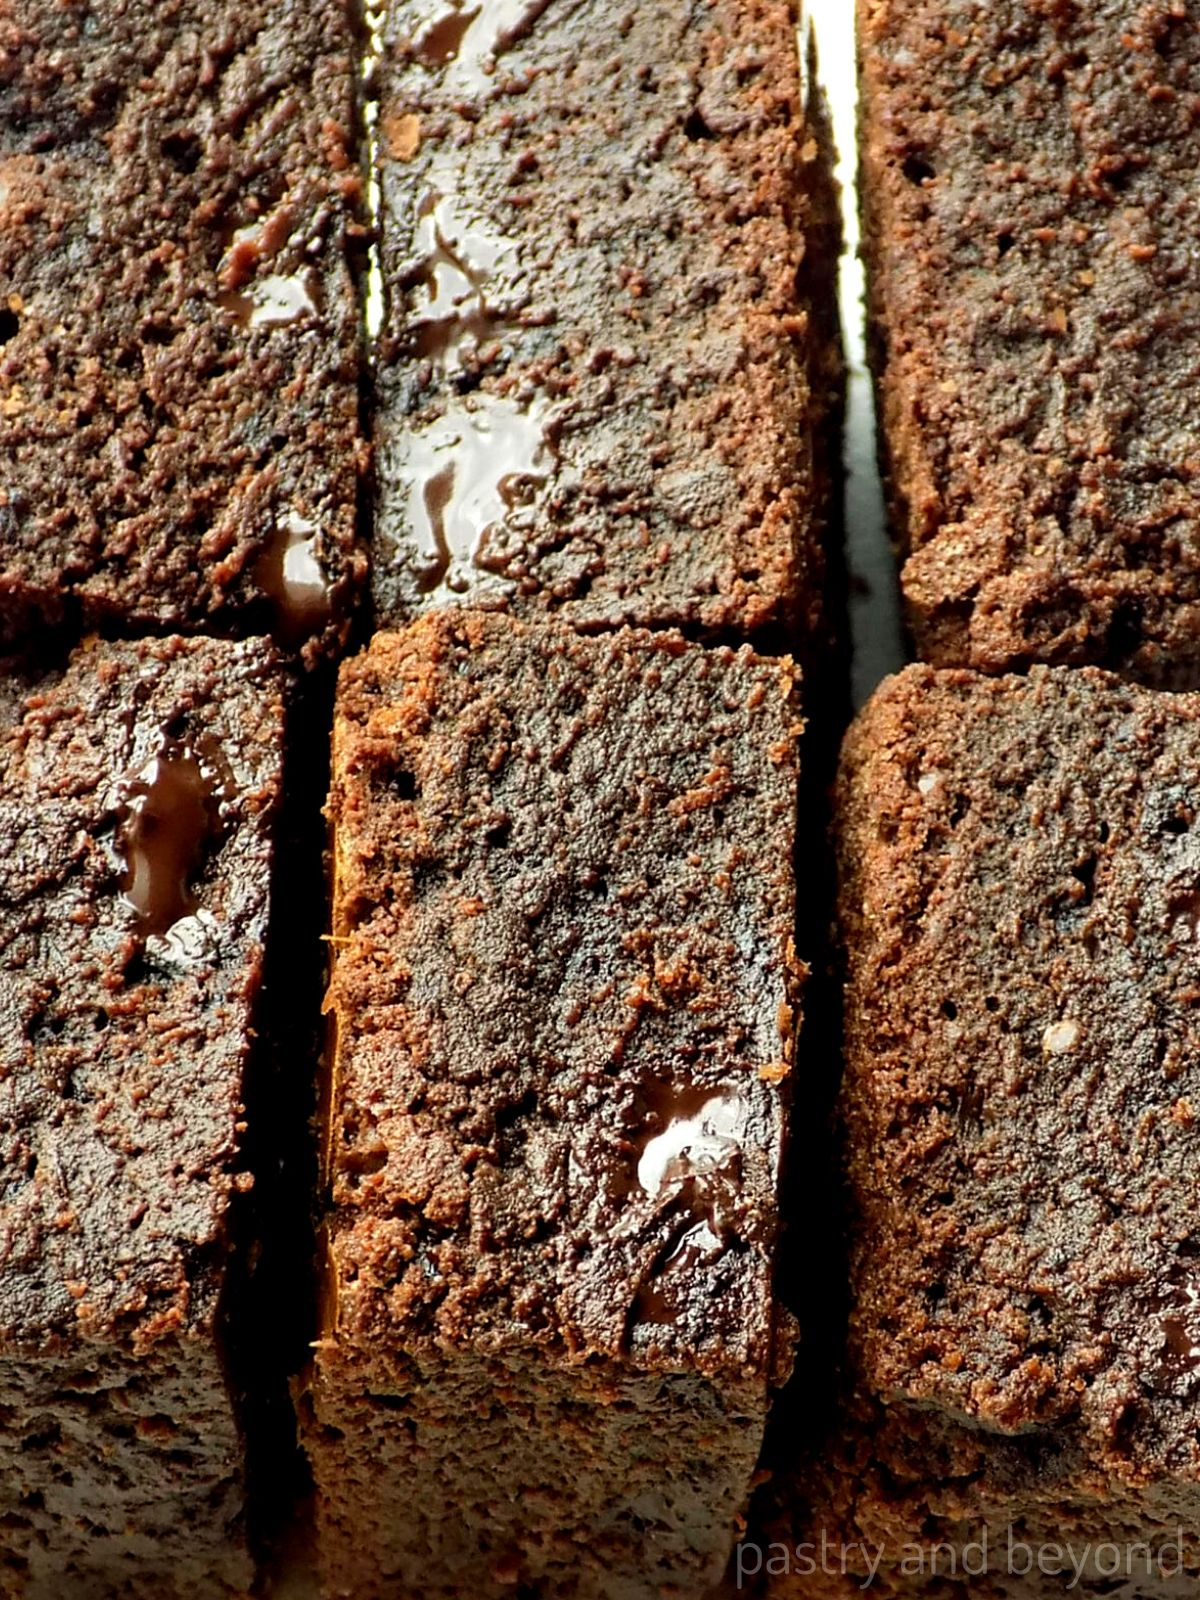 Brownies next to each other to show how fudgy they are.